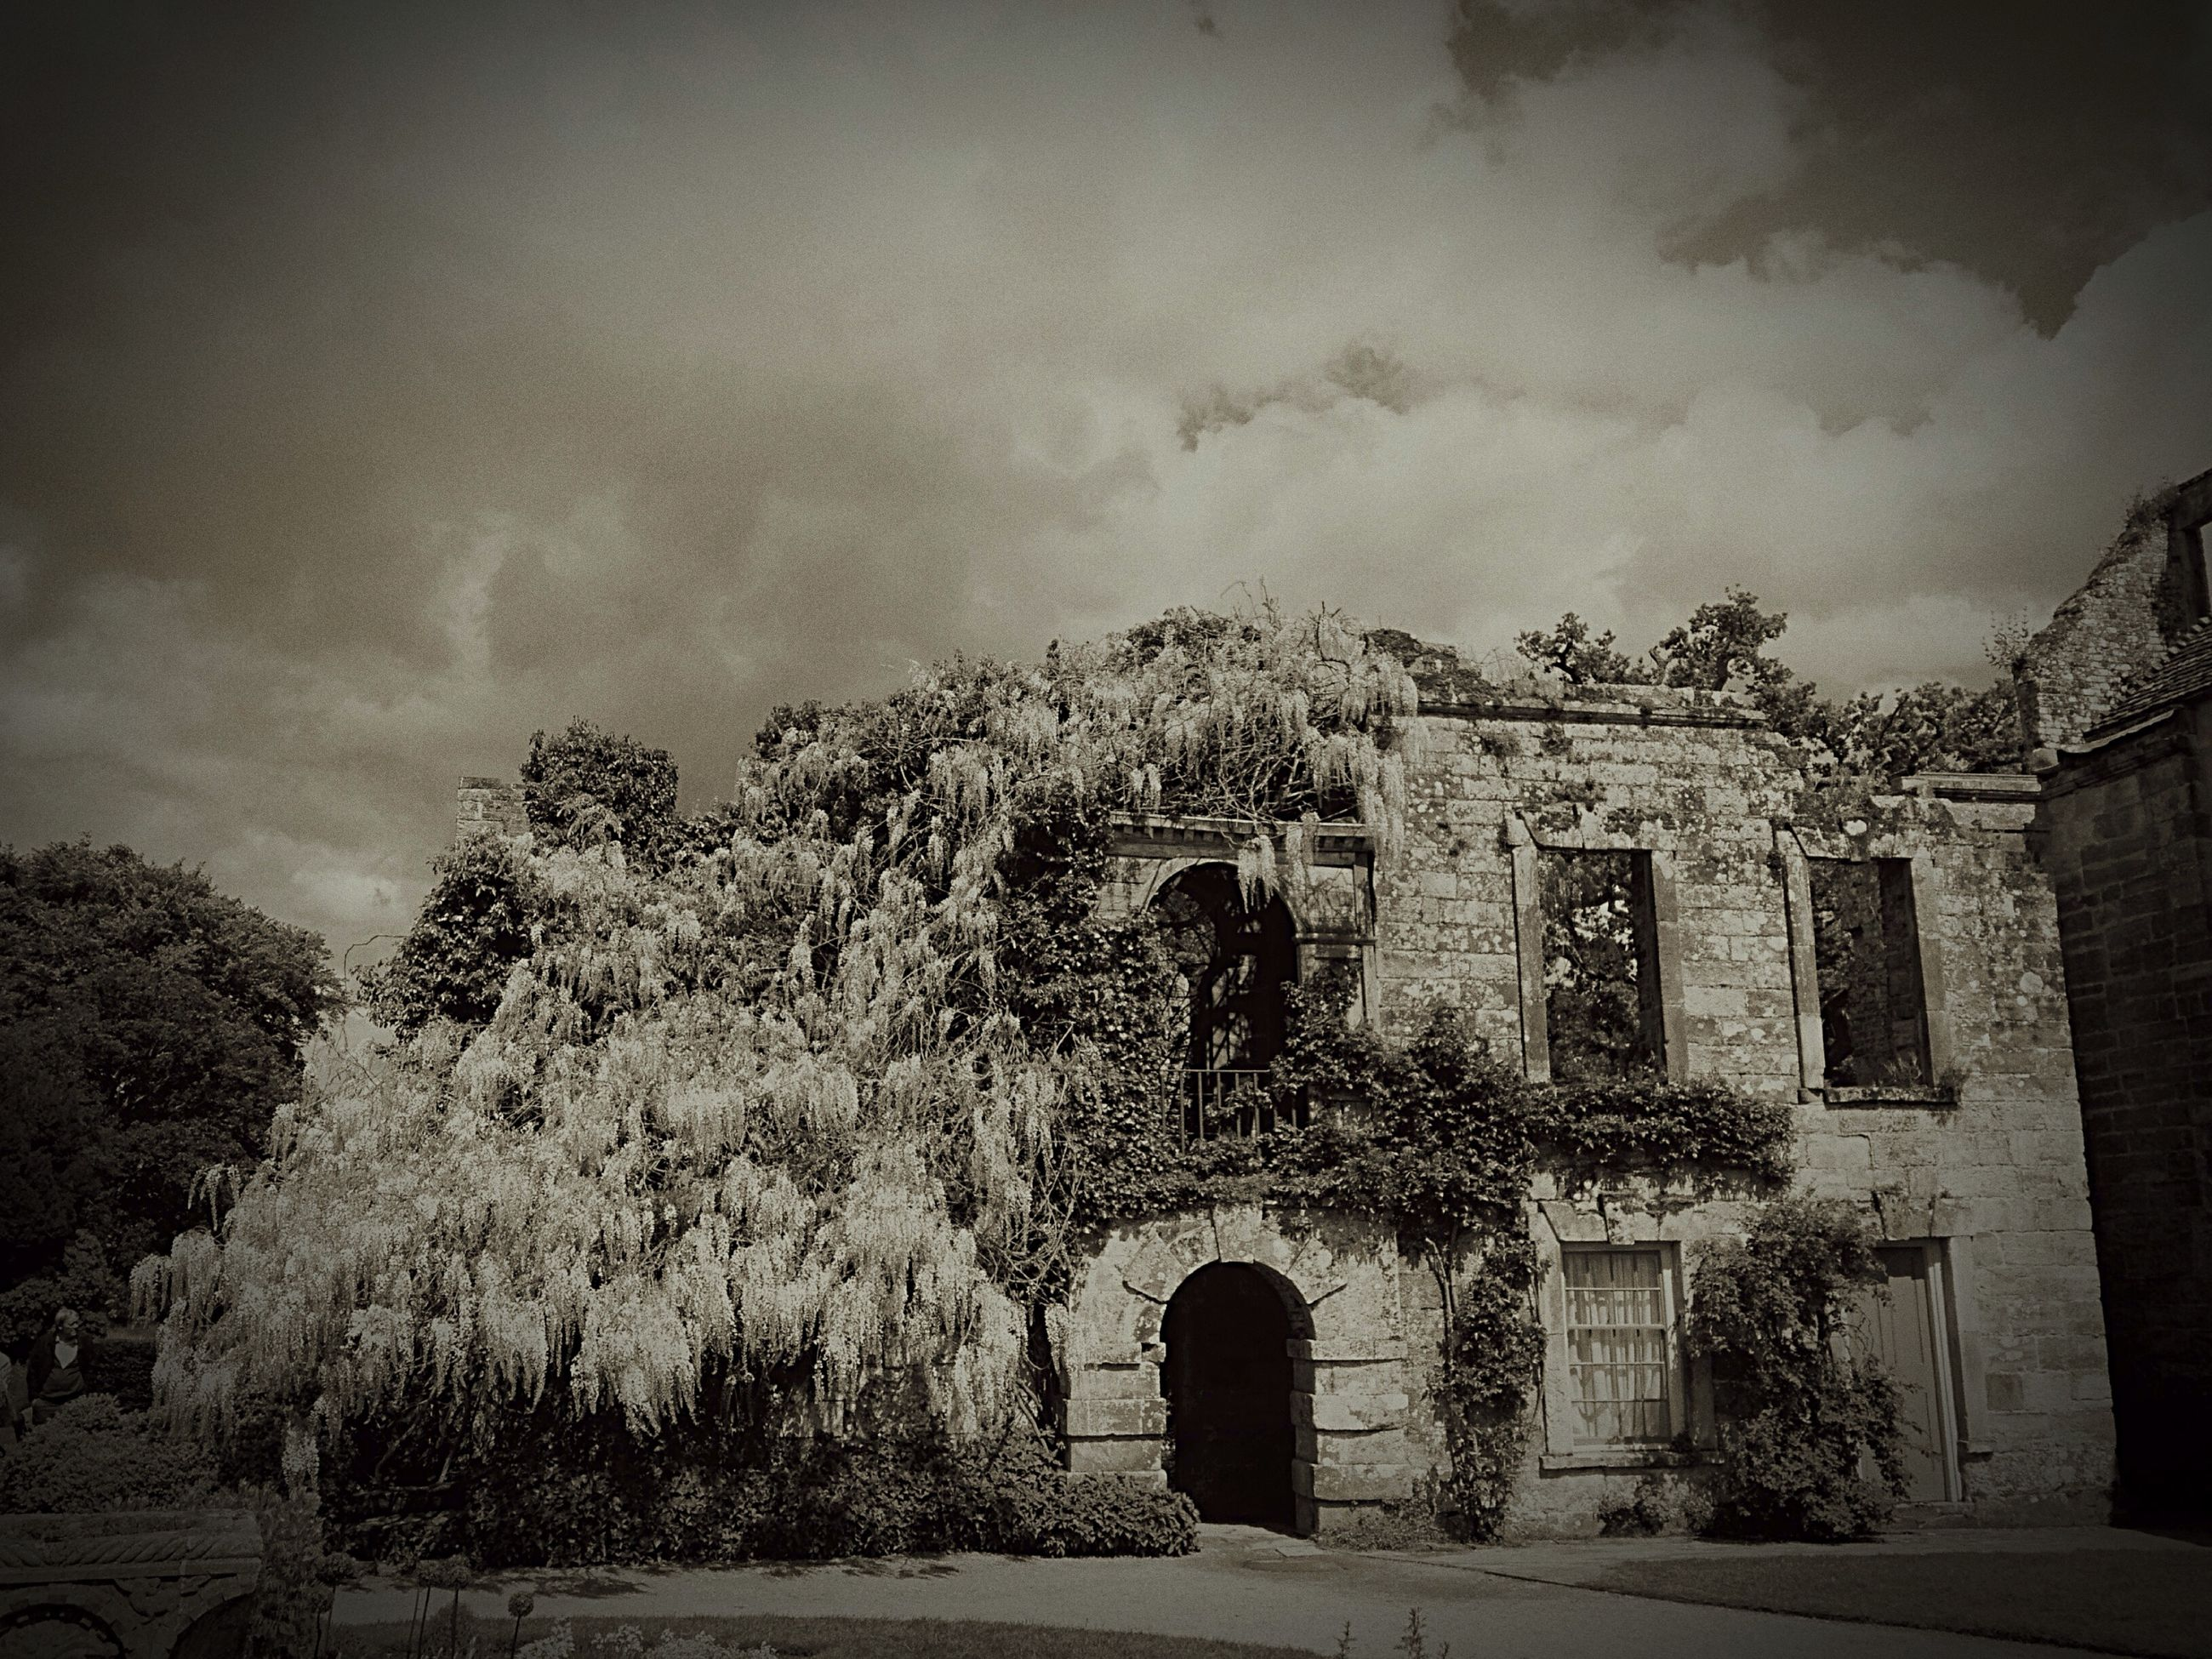 architecture, built structure, building exterior, arch, tree, old, sky, history, abandoned, stone wall, old ruin, house, the past, outdoors, wall - building feature, day, building, no people, run-down, obsolete